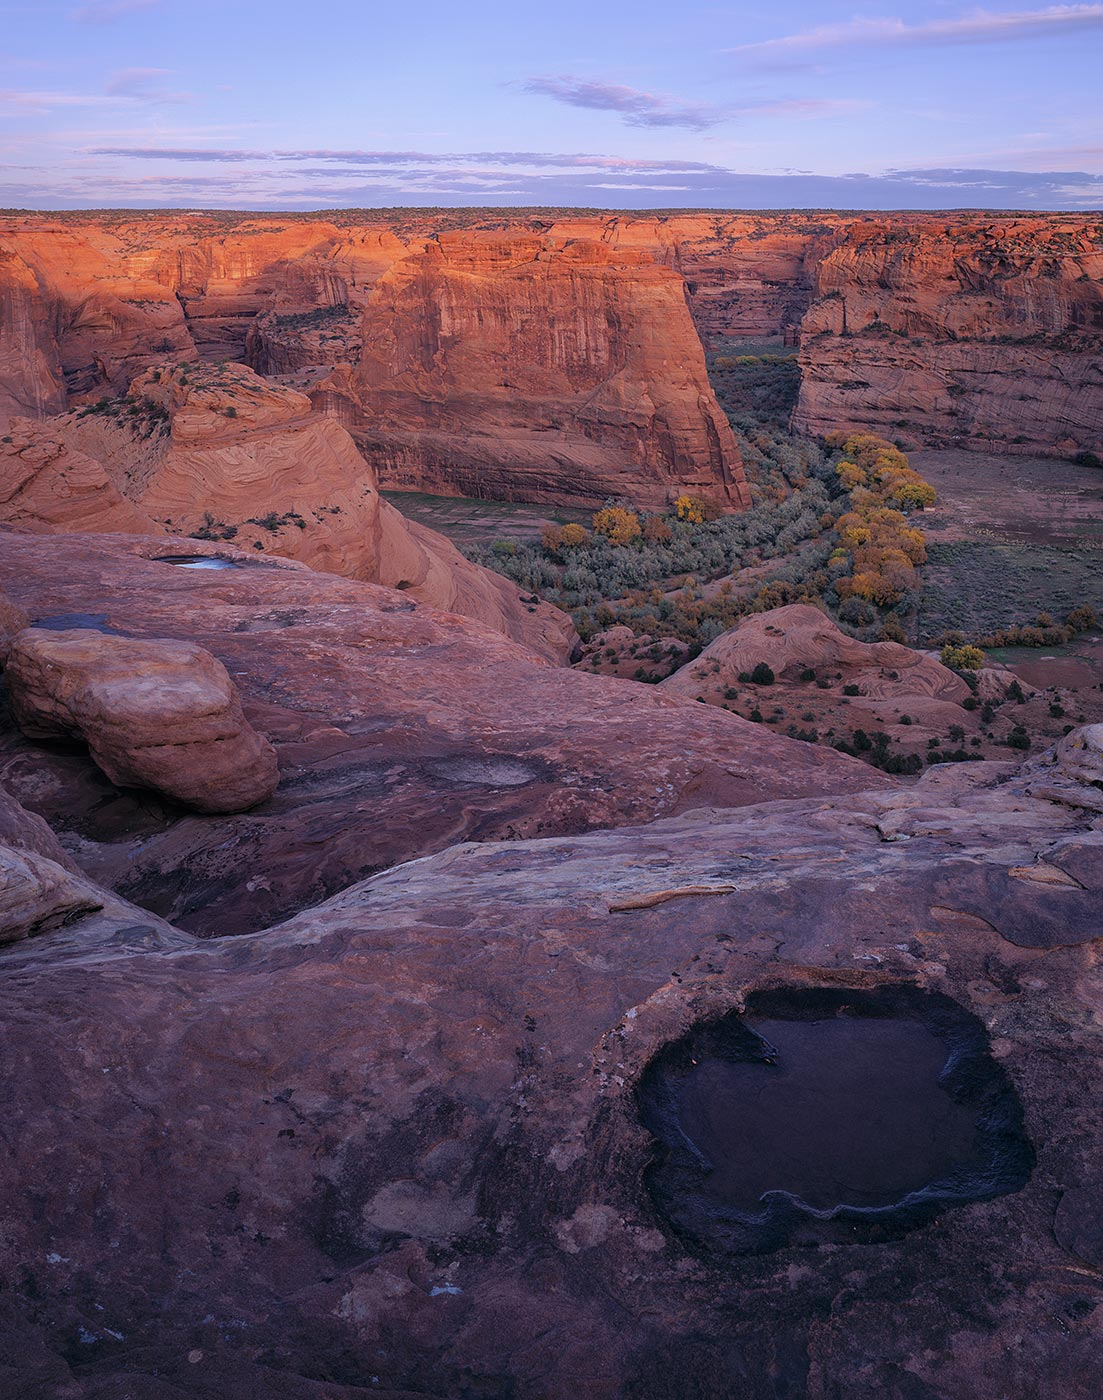 515 Water above the Canyon, Canyon de Chelly National Monument, Arizona